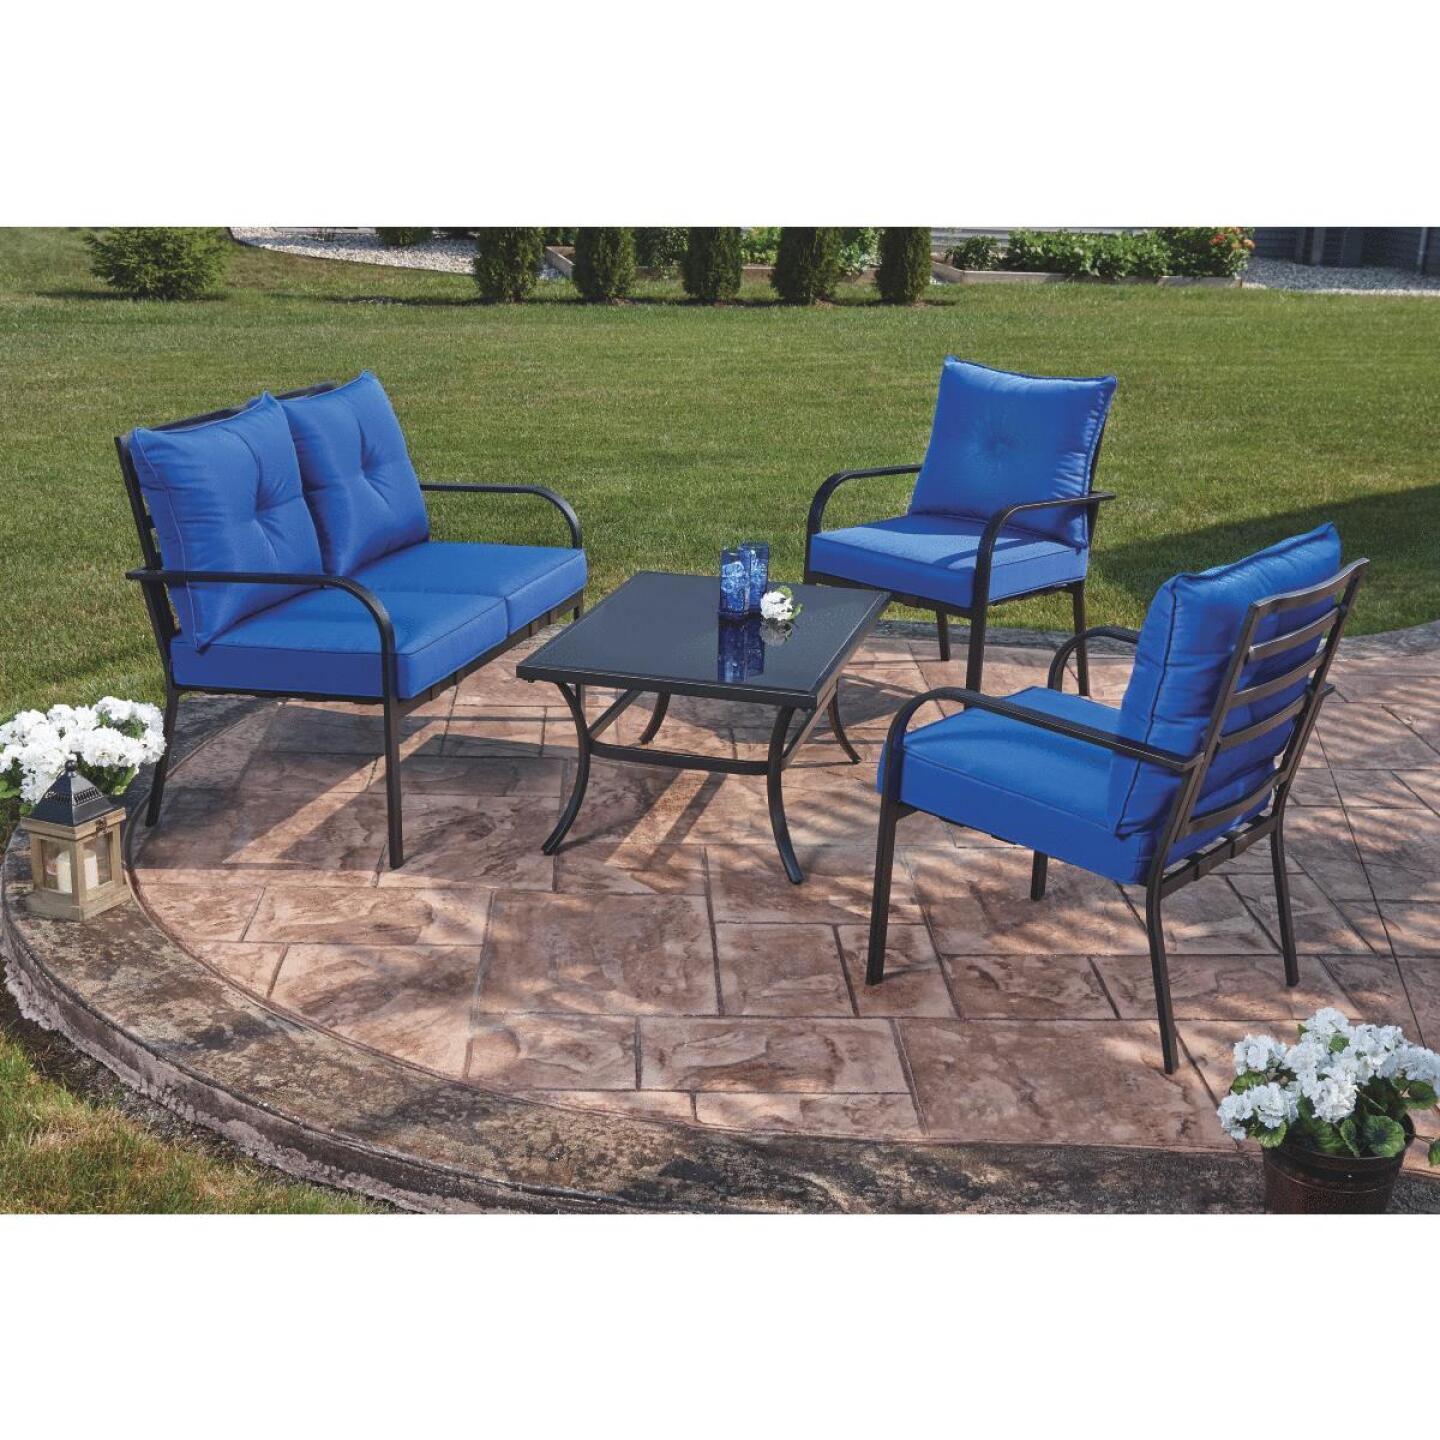 Outdoor Expressions Azure 4-Piece Chat Set Image 3